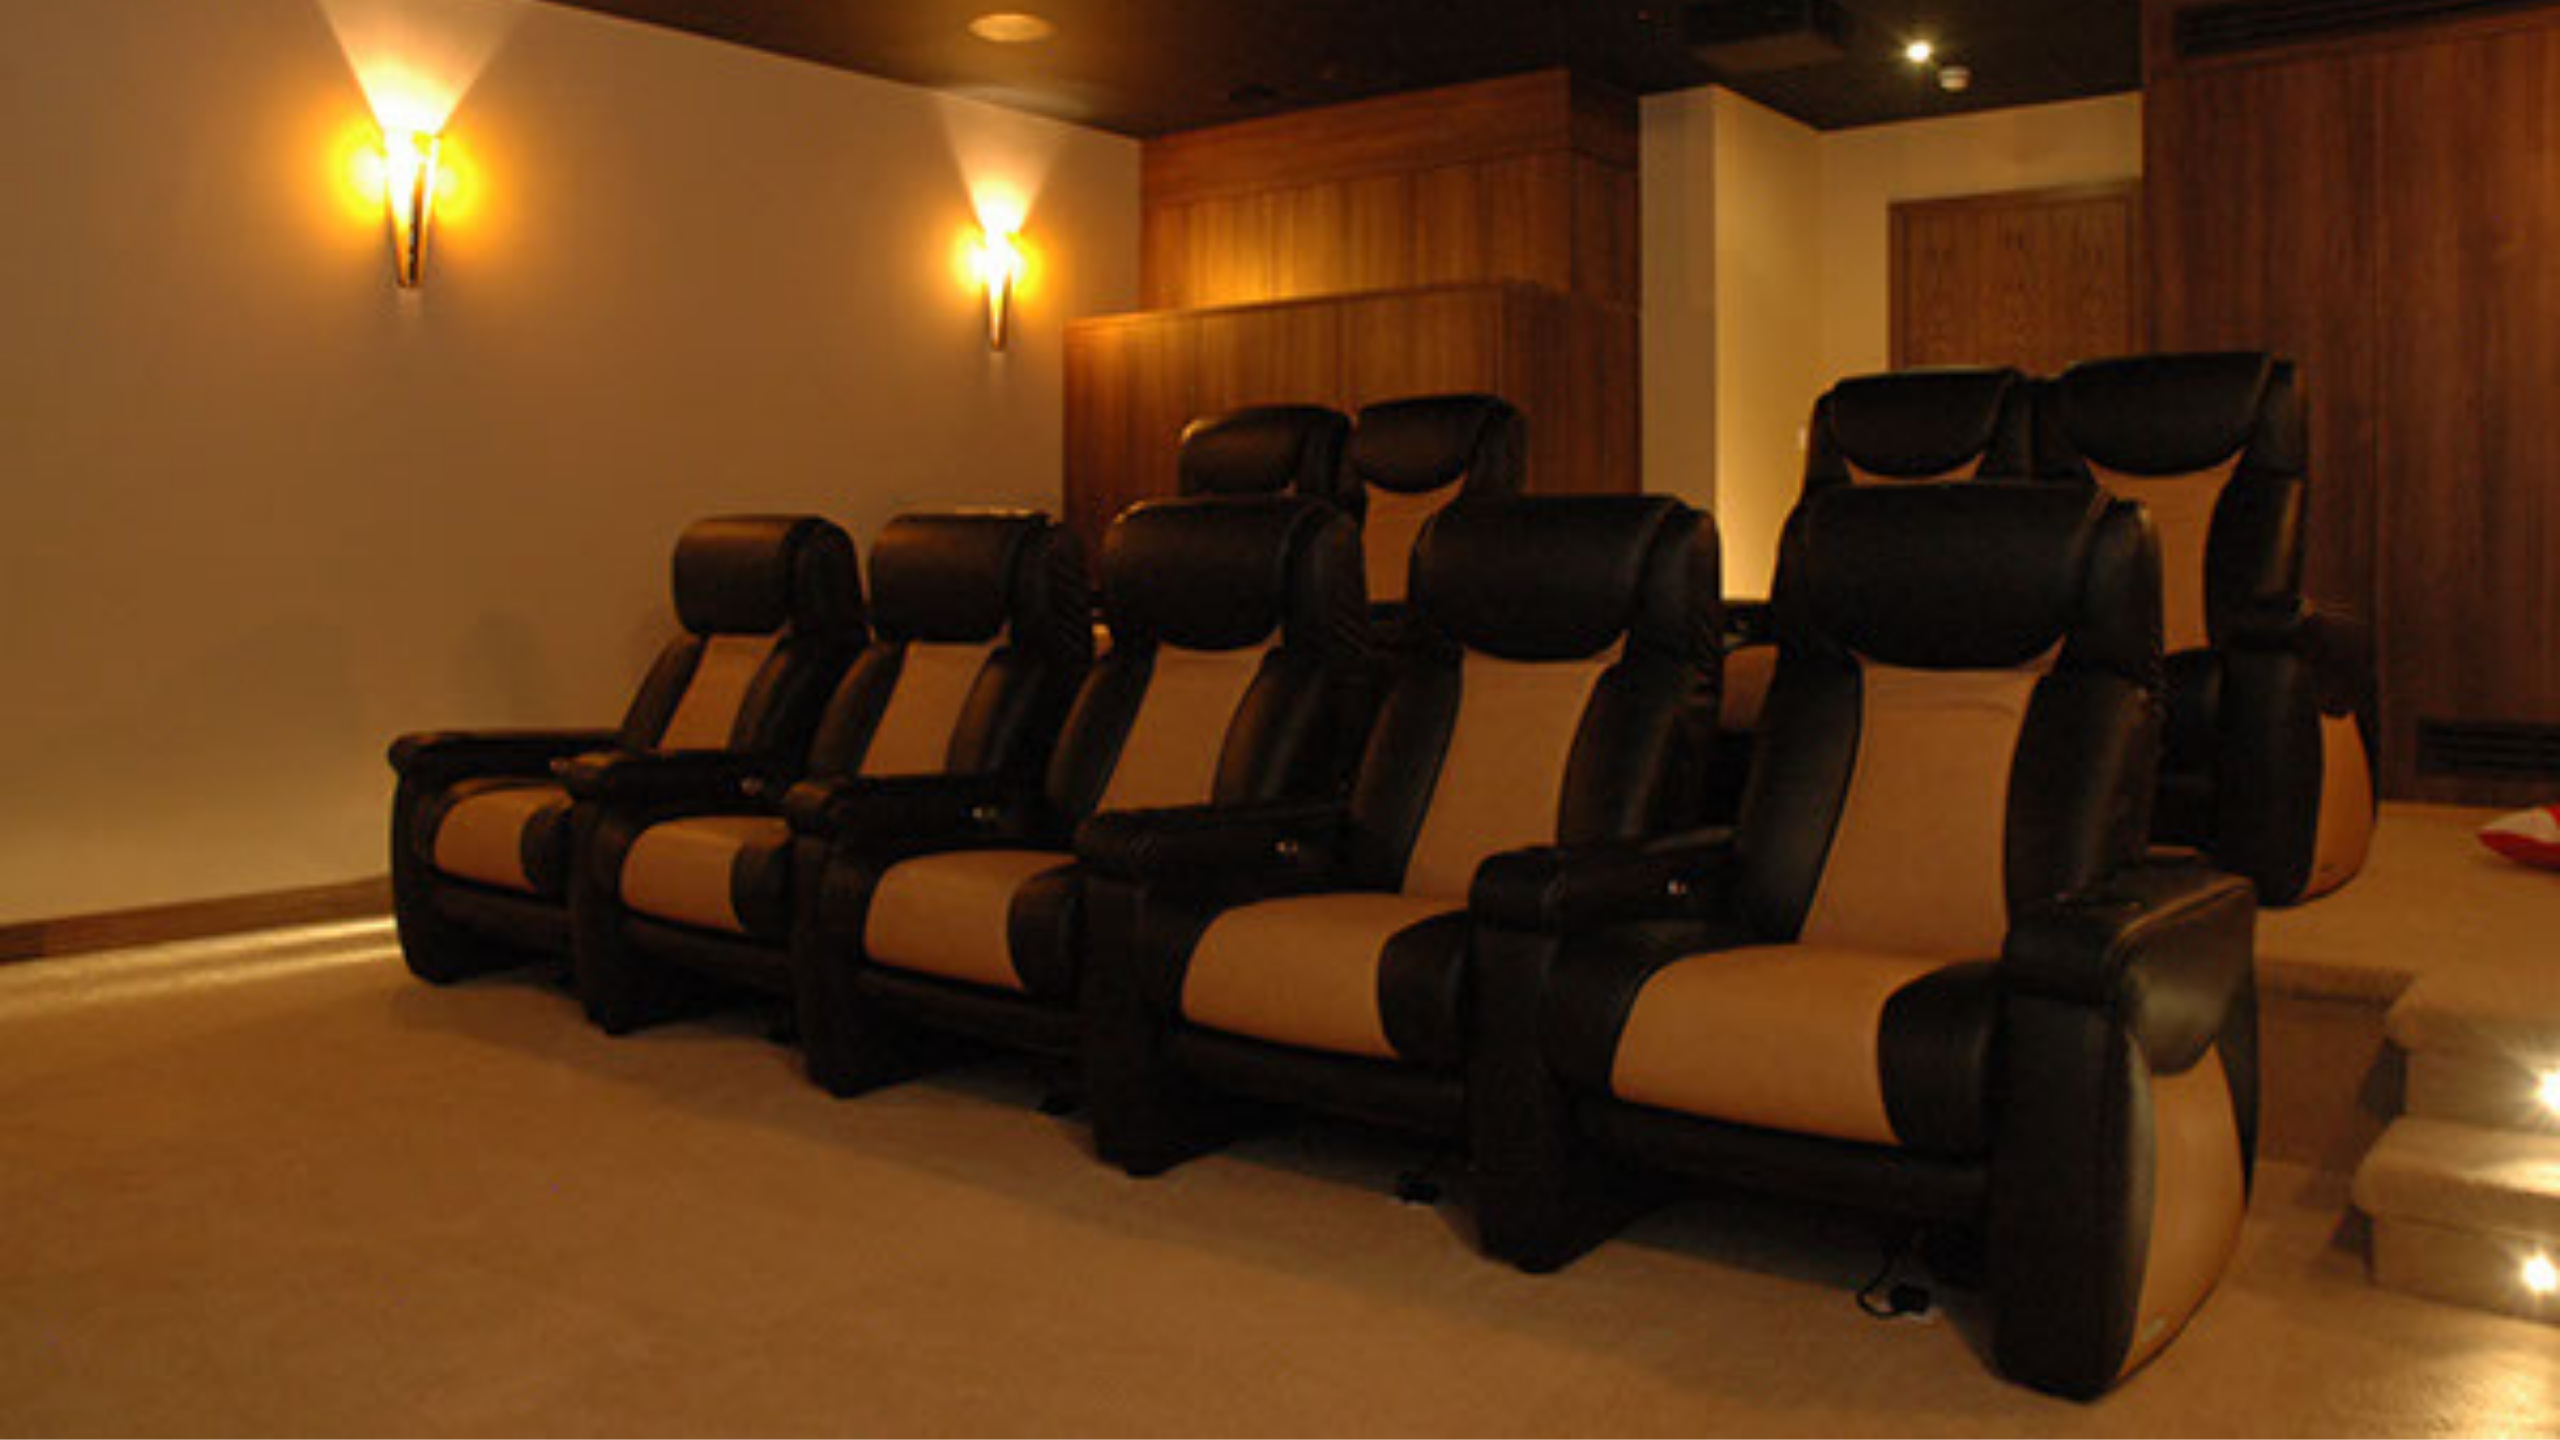 HOME CINEMA, AUDIO VISUAL & SMART HOME AUTOMATION IN CANFORD CLIFFS, DORSET